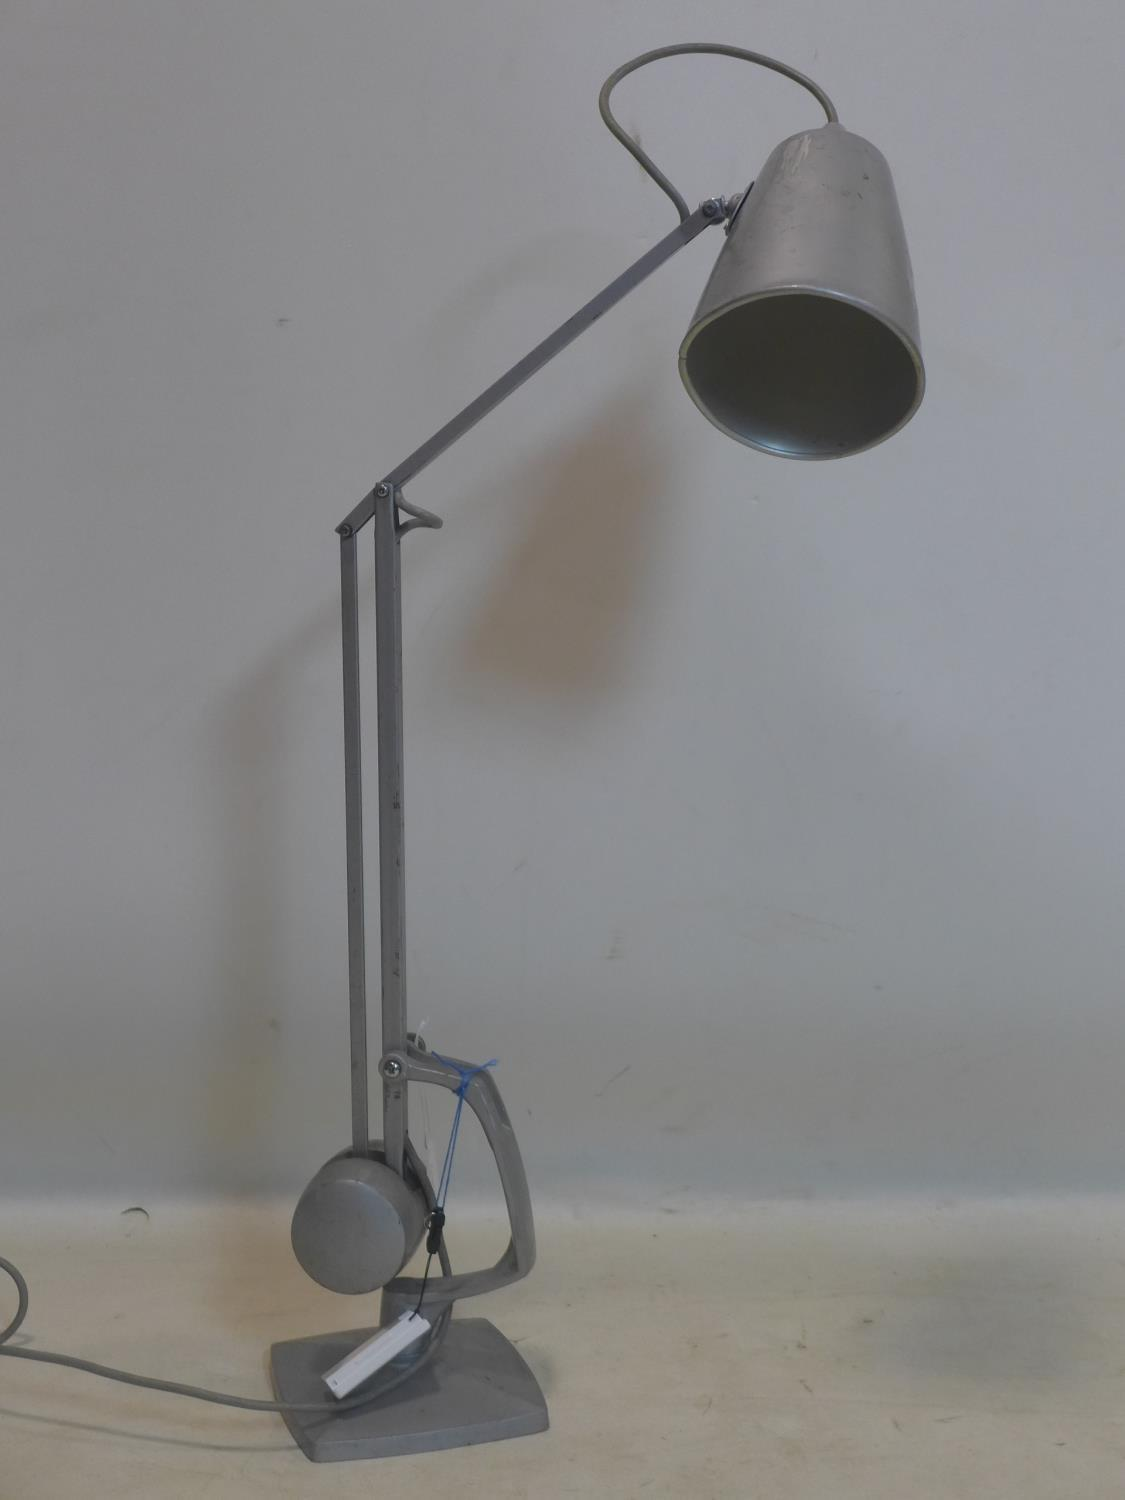 A Hadrill & Horstman style vintage counter weight anglepoise lamp